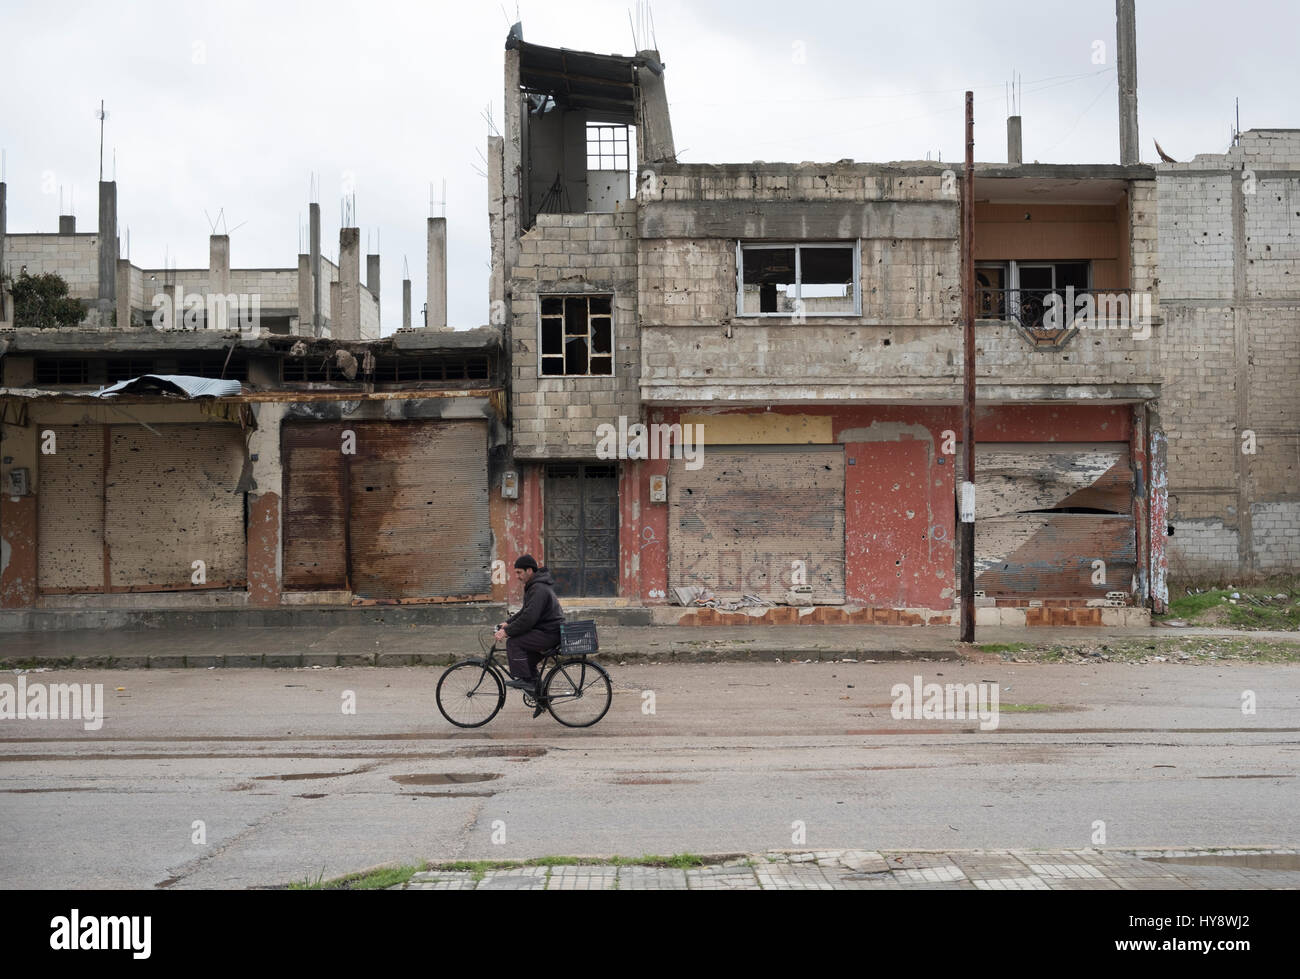 Bicycler in distressed district Amr in Homs, Syria in early 2017 - Stock Image